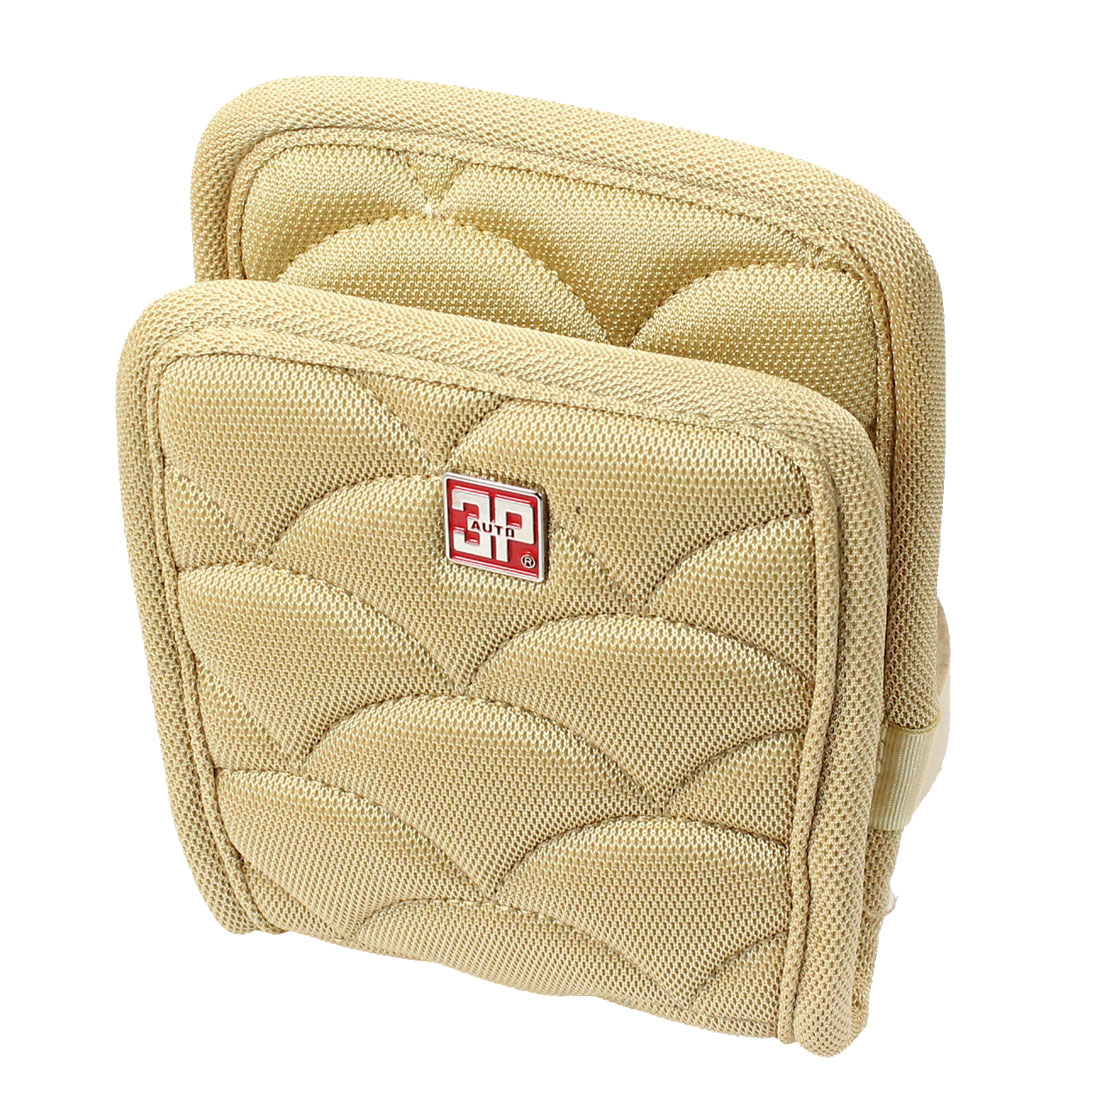 Car Vehicle Air Vent Beige Nylon Phone Pouch Holder Bag Sundries Case